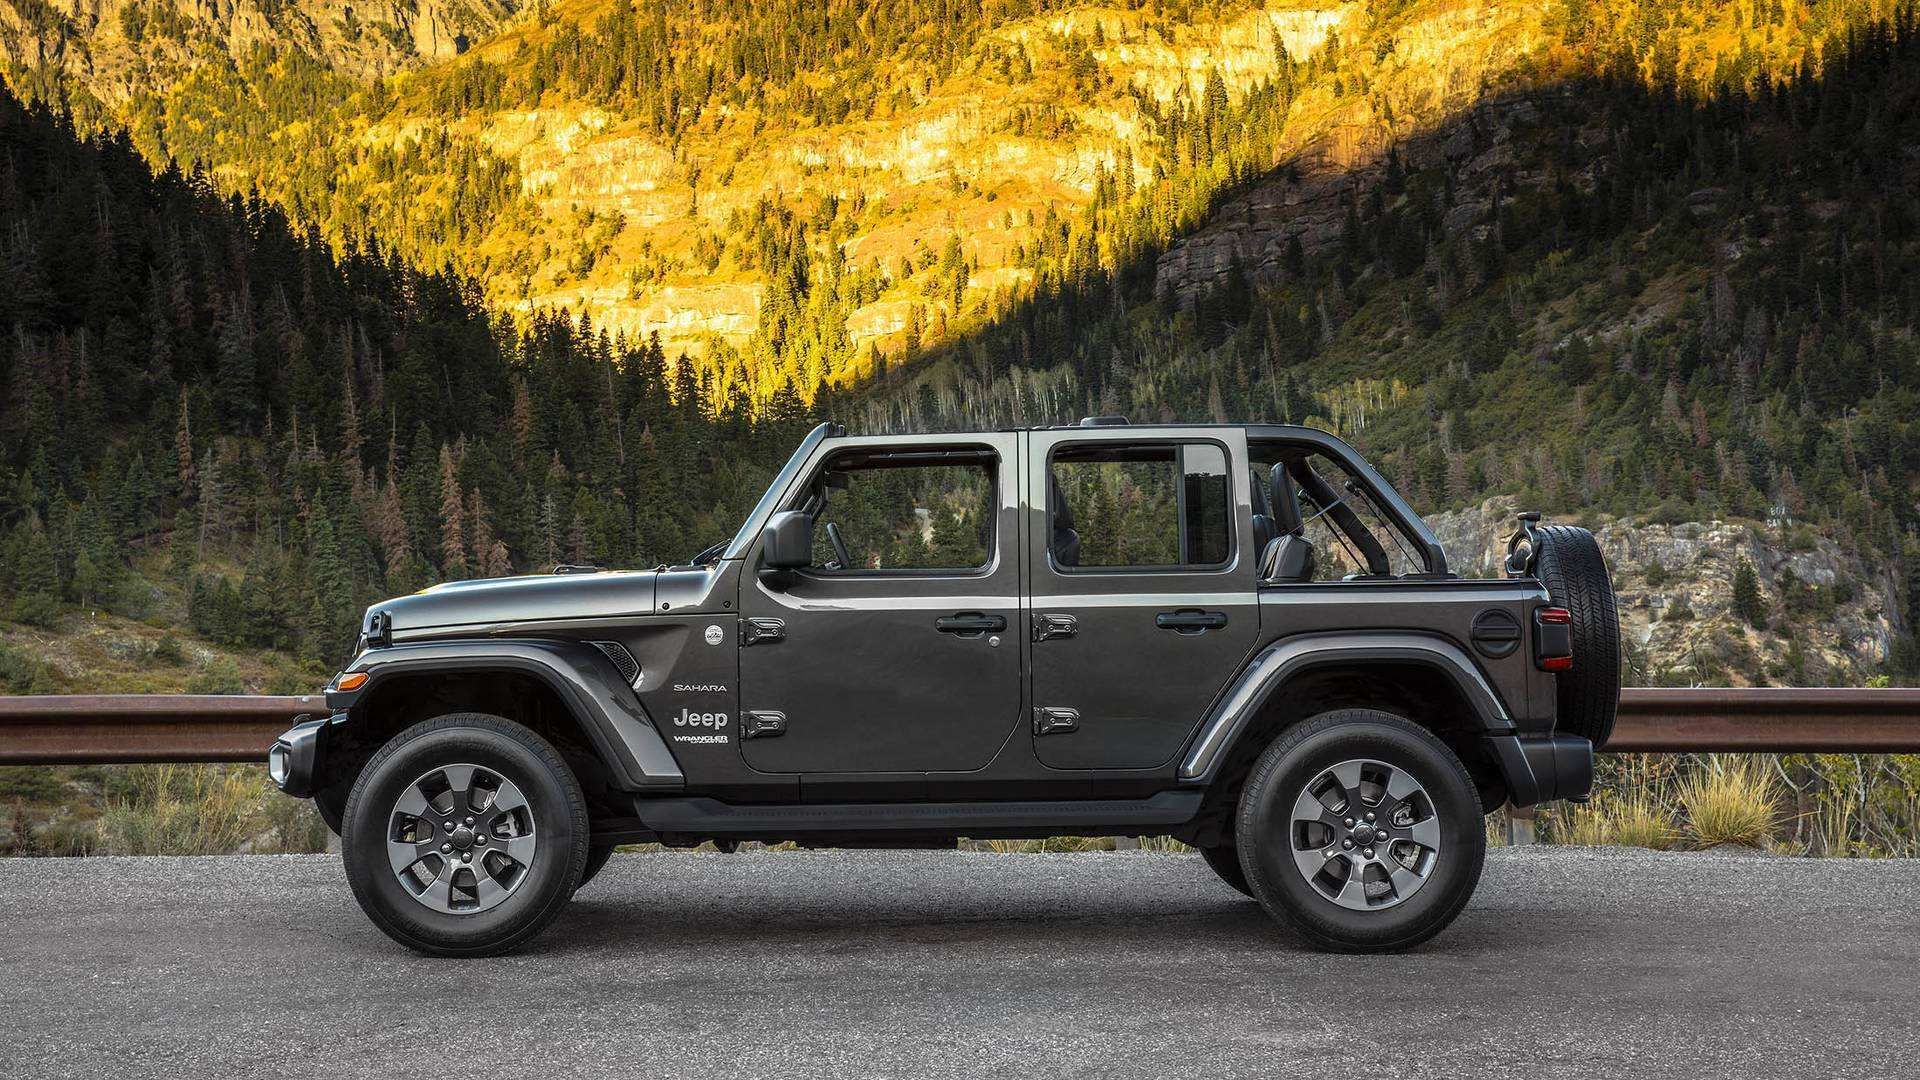 55 All New 2019 Jeep Ecodiesel Engine